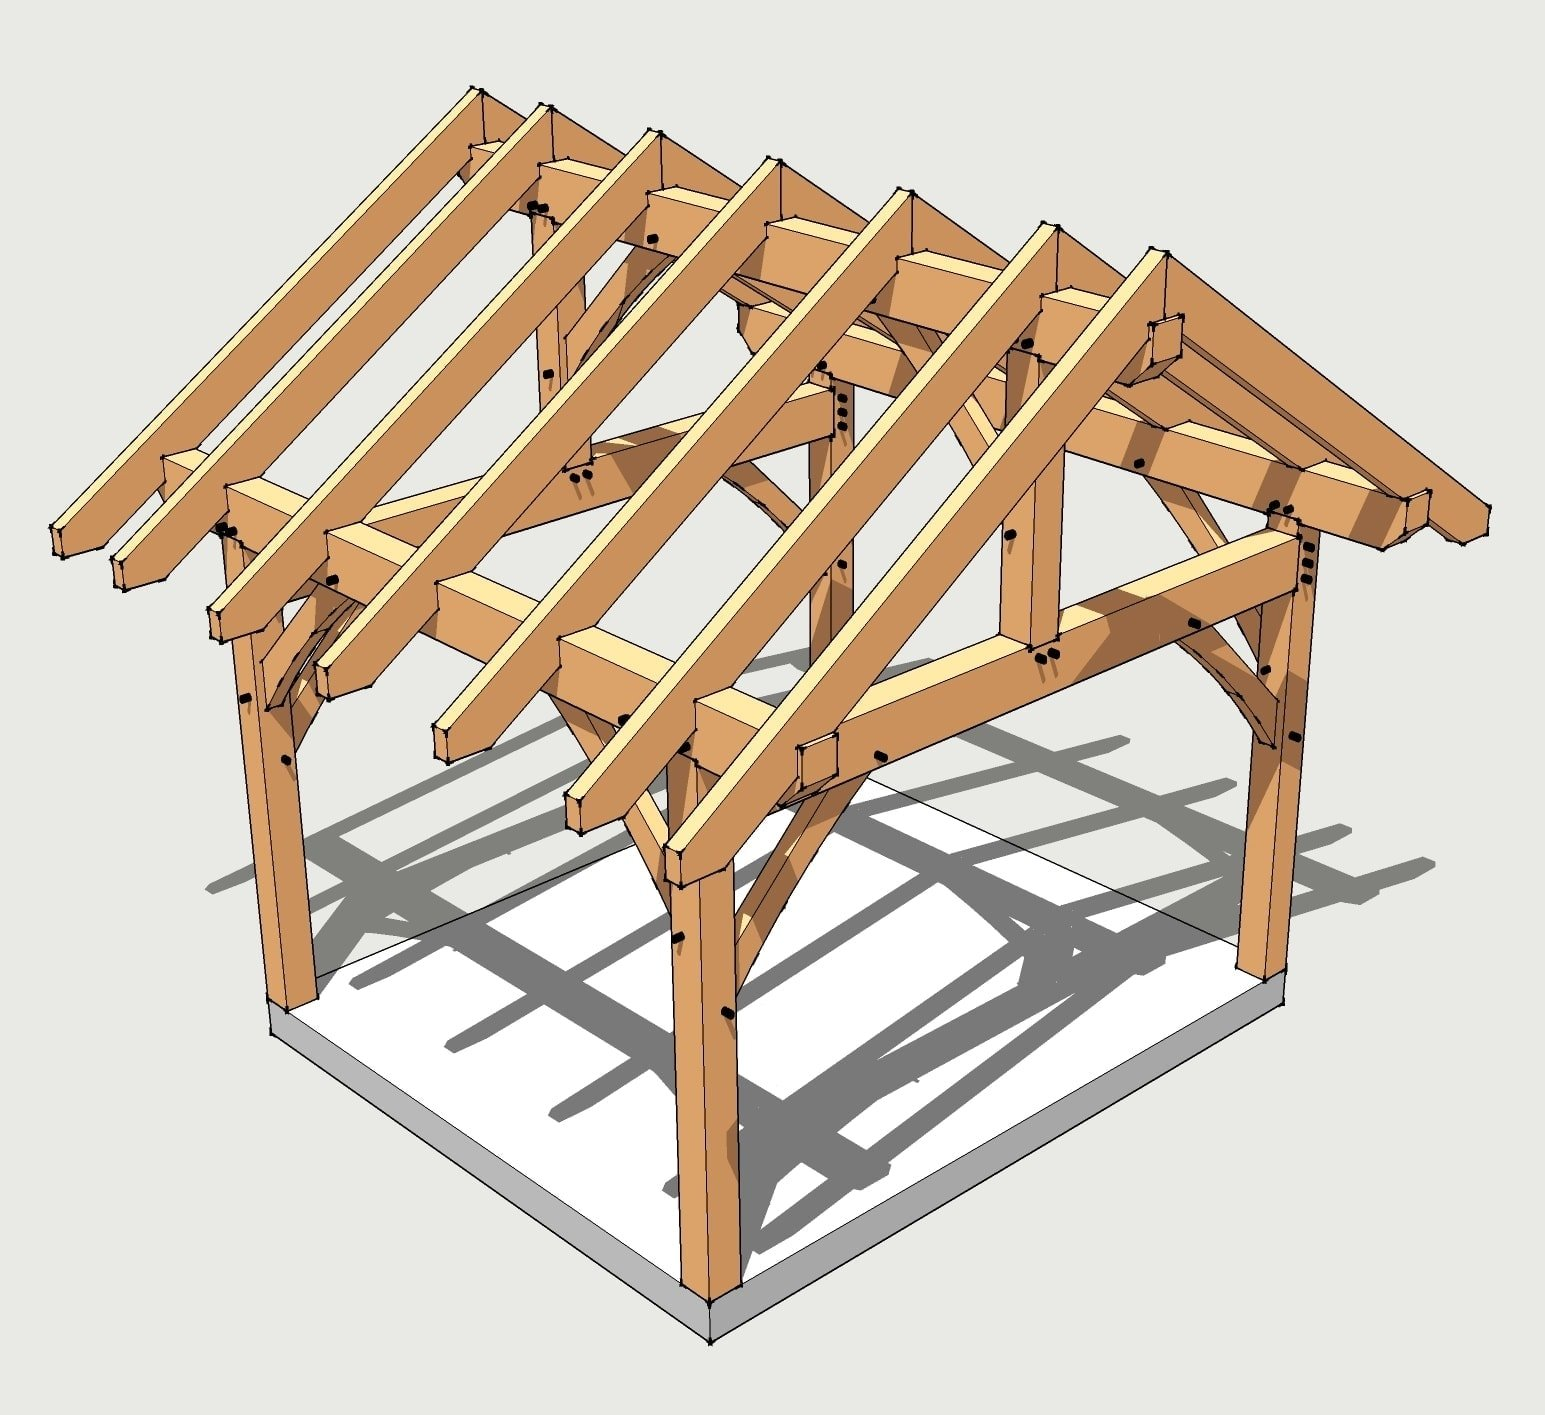 12x14 timber frame plan timber frame hq for Post and beam construction plans